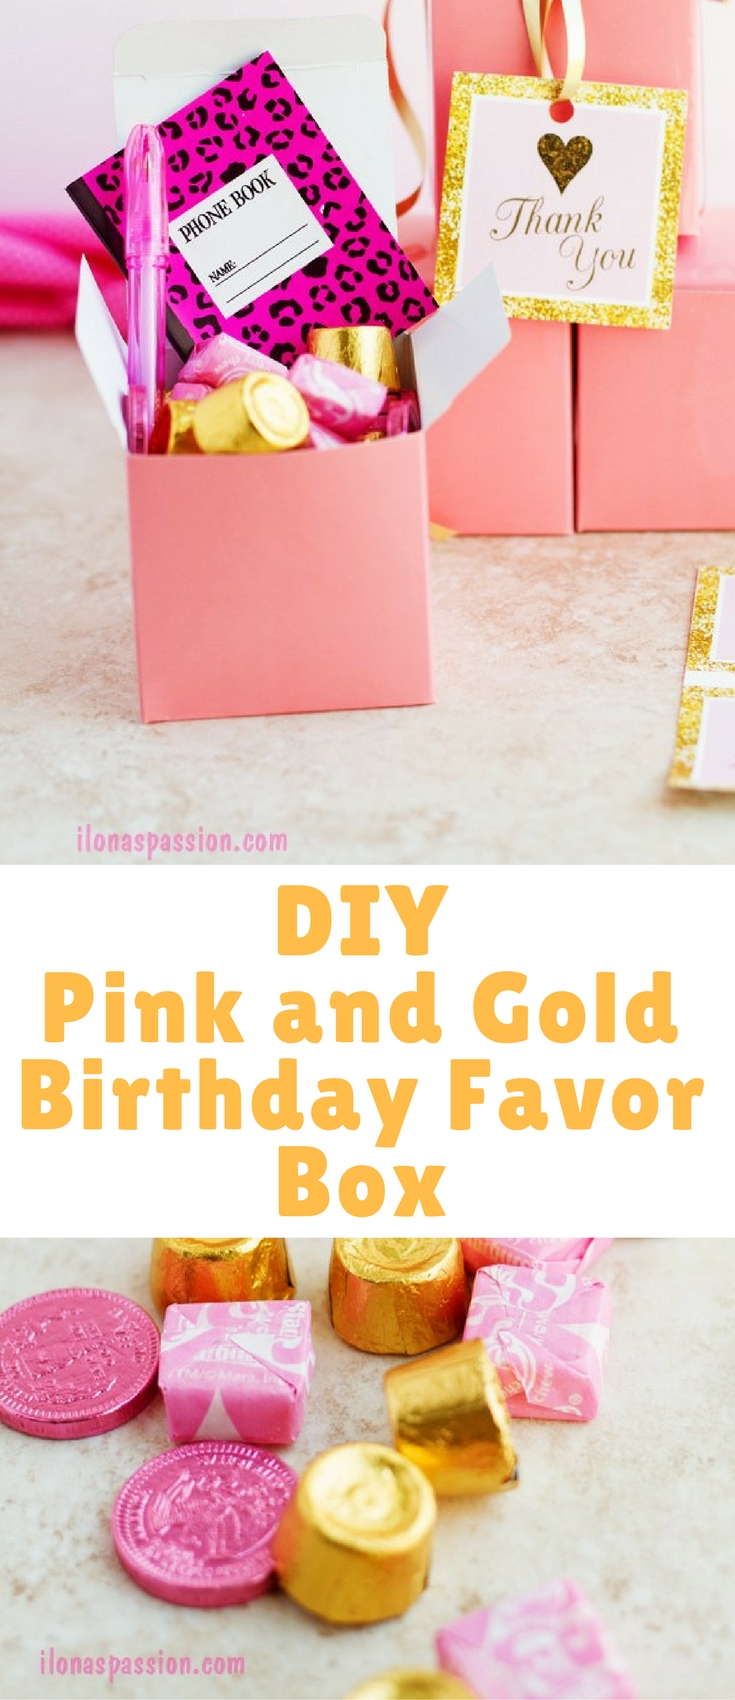 DIY Pink and gold birthday favor box idea with chocolate candies, little notepad and pen. Great gift idea for each little guest at the birthday party!